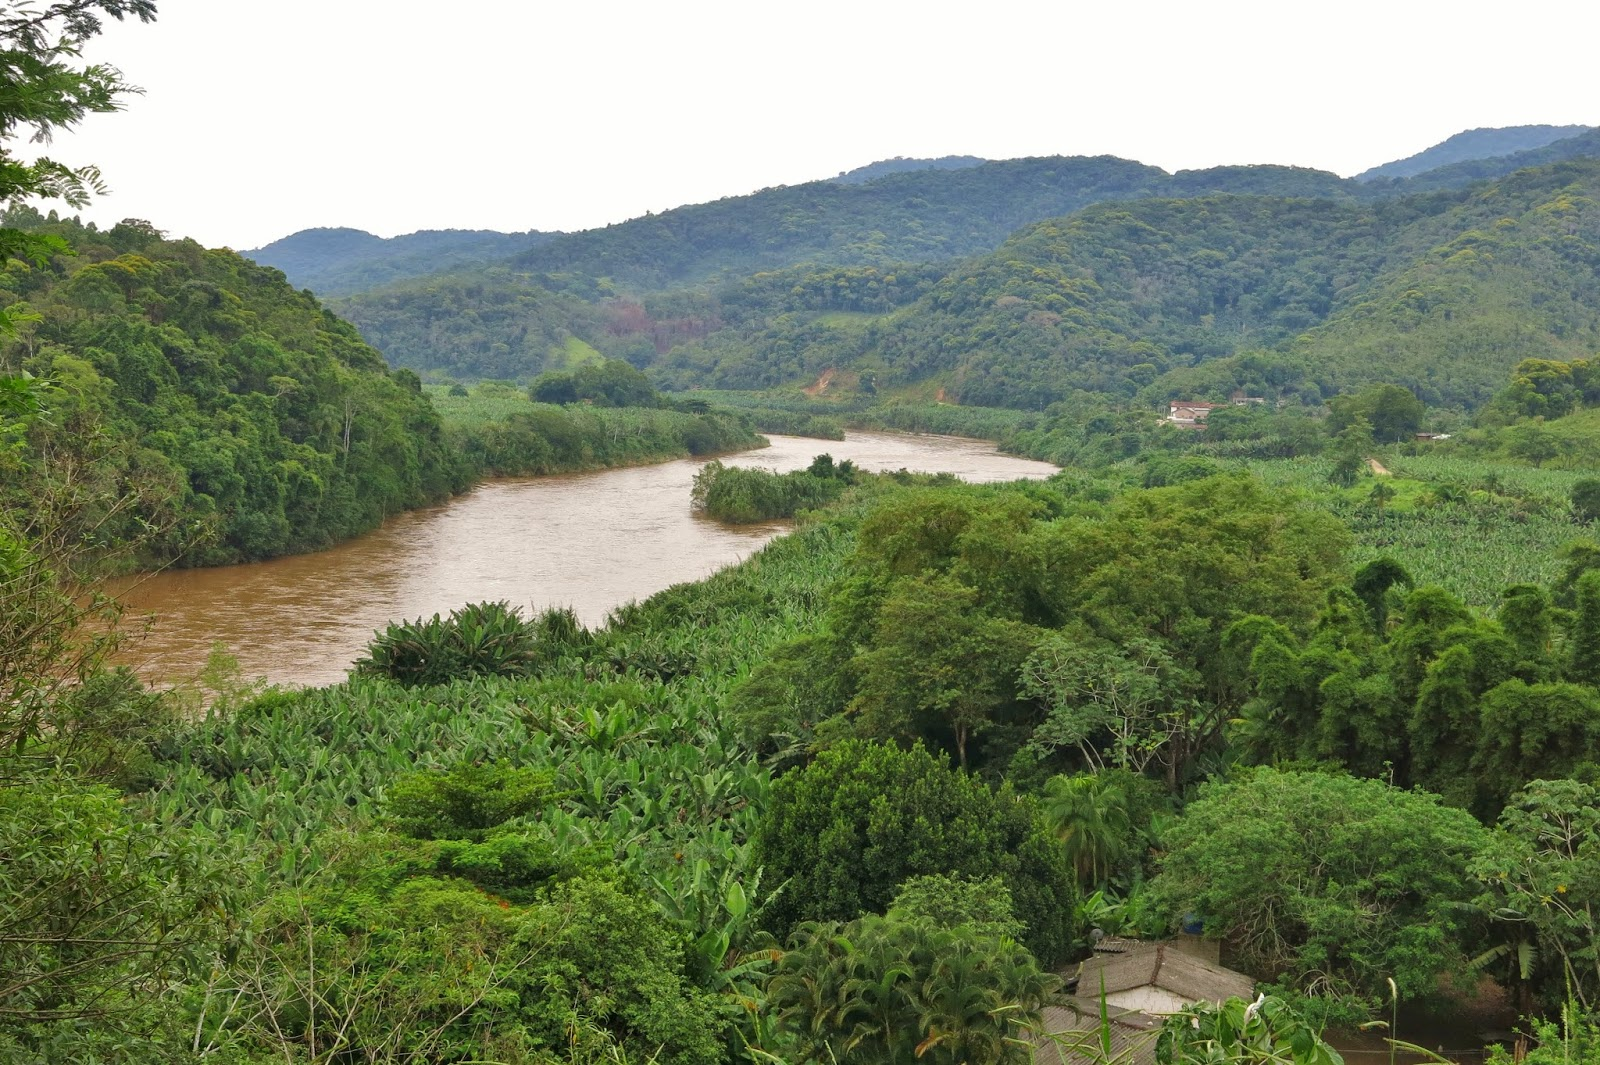 Rio Ribeira do Iguape, visto do quilombo